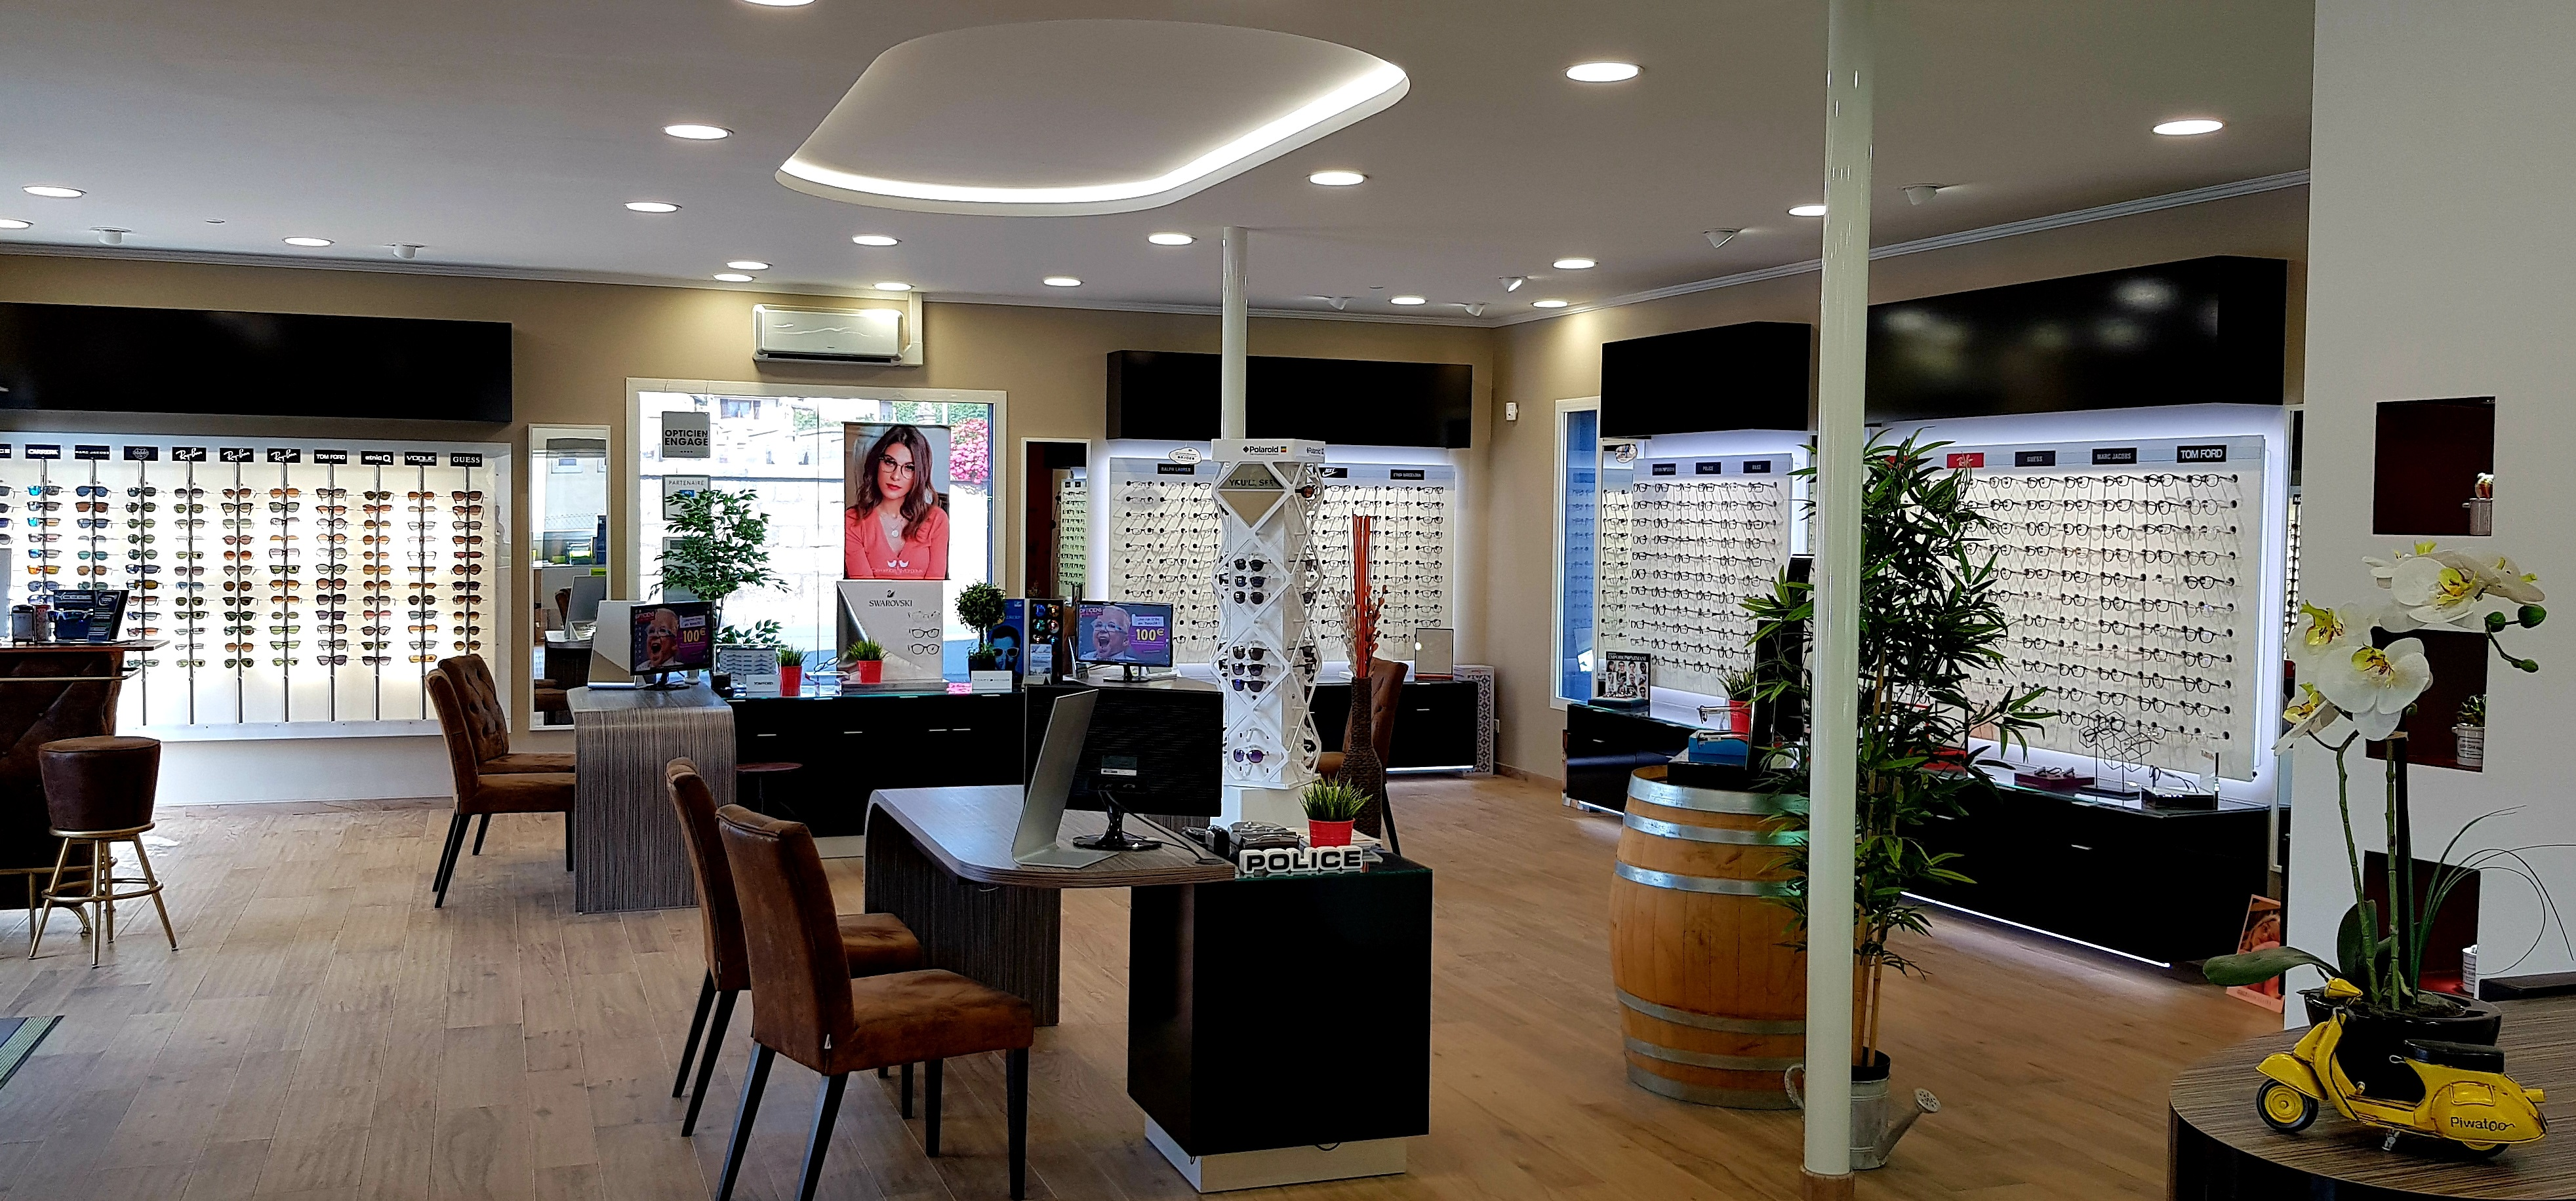 Opticien : L'ATELIER OPTIQUE, 3 PLACE DU 18 NOVEMBRE 1944, 90600 GRANDVILLARS